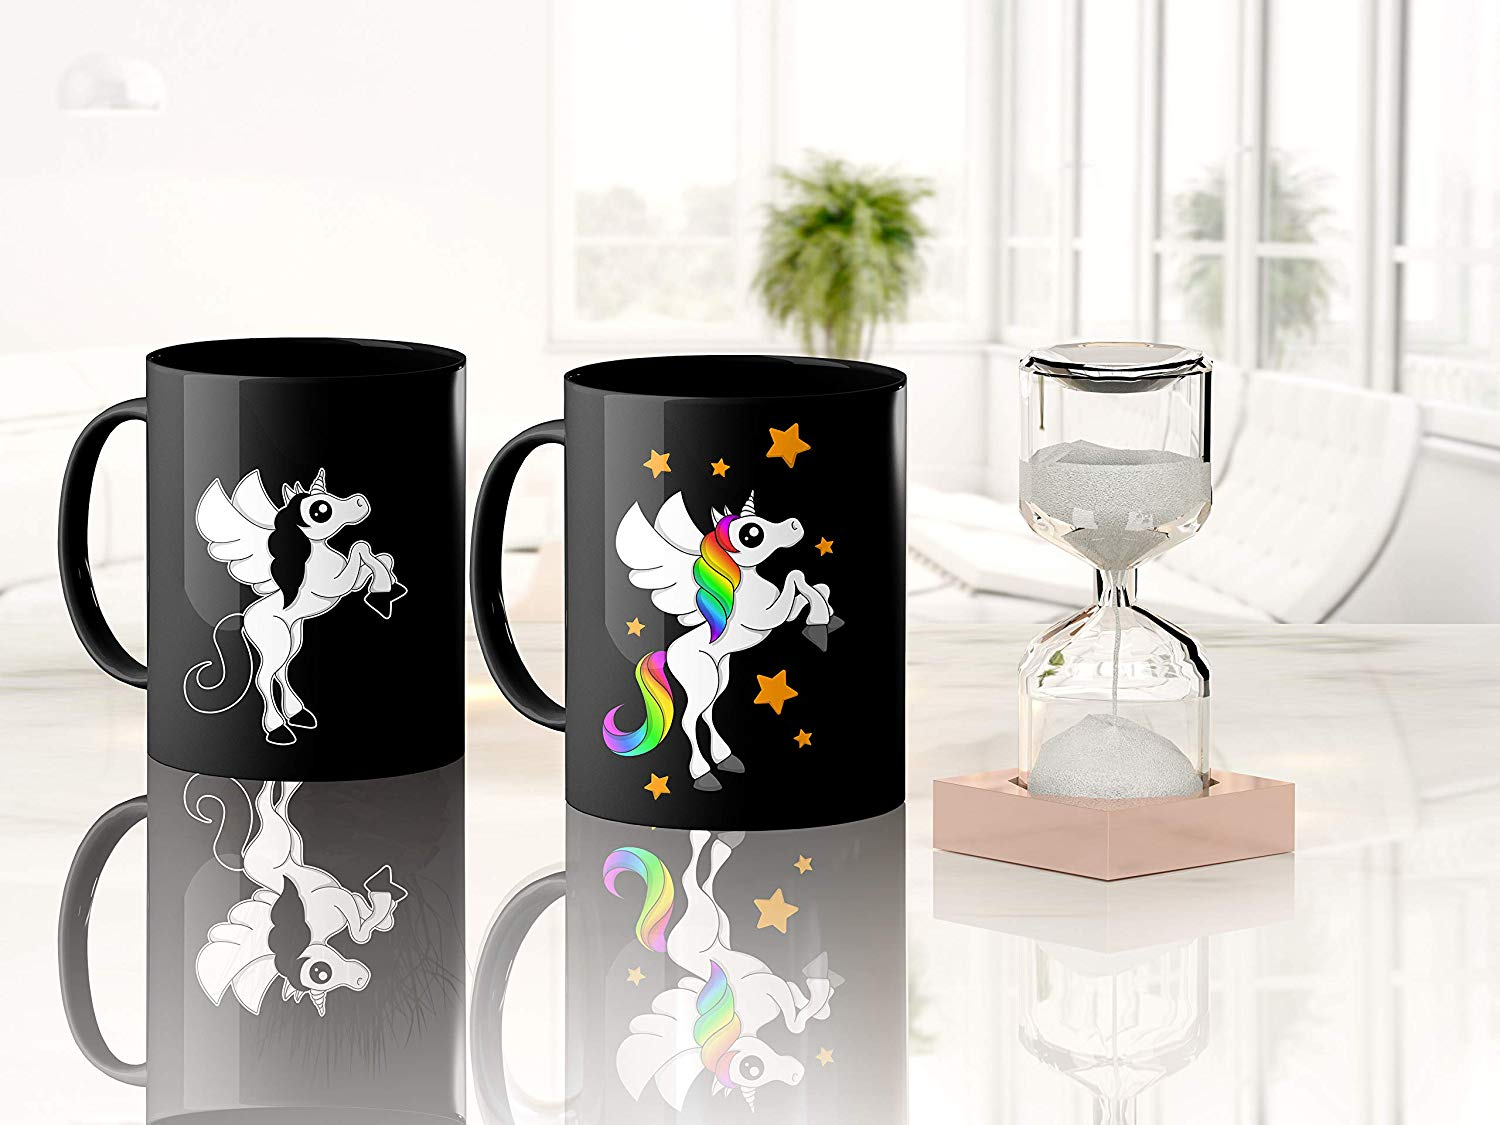 Heat Sensitive Color Changing Coffee Mug Funny Coffee Cup Black Unicorn Design Funny Gift Idea B07D21DSFL 4